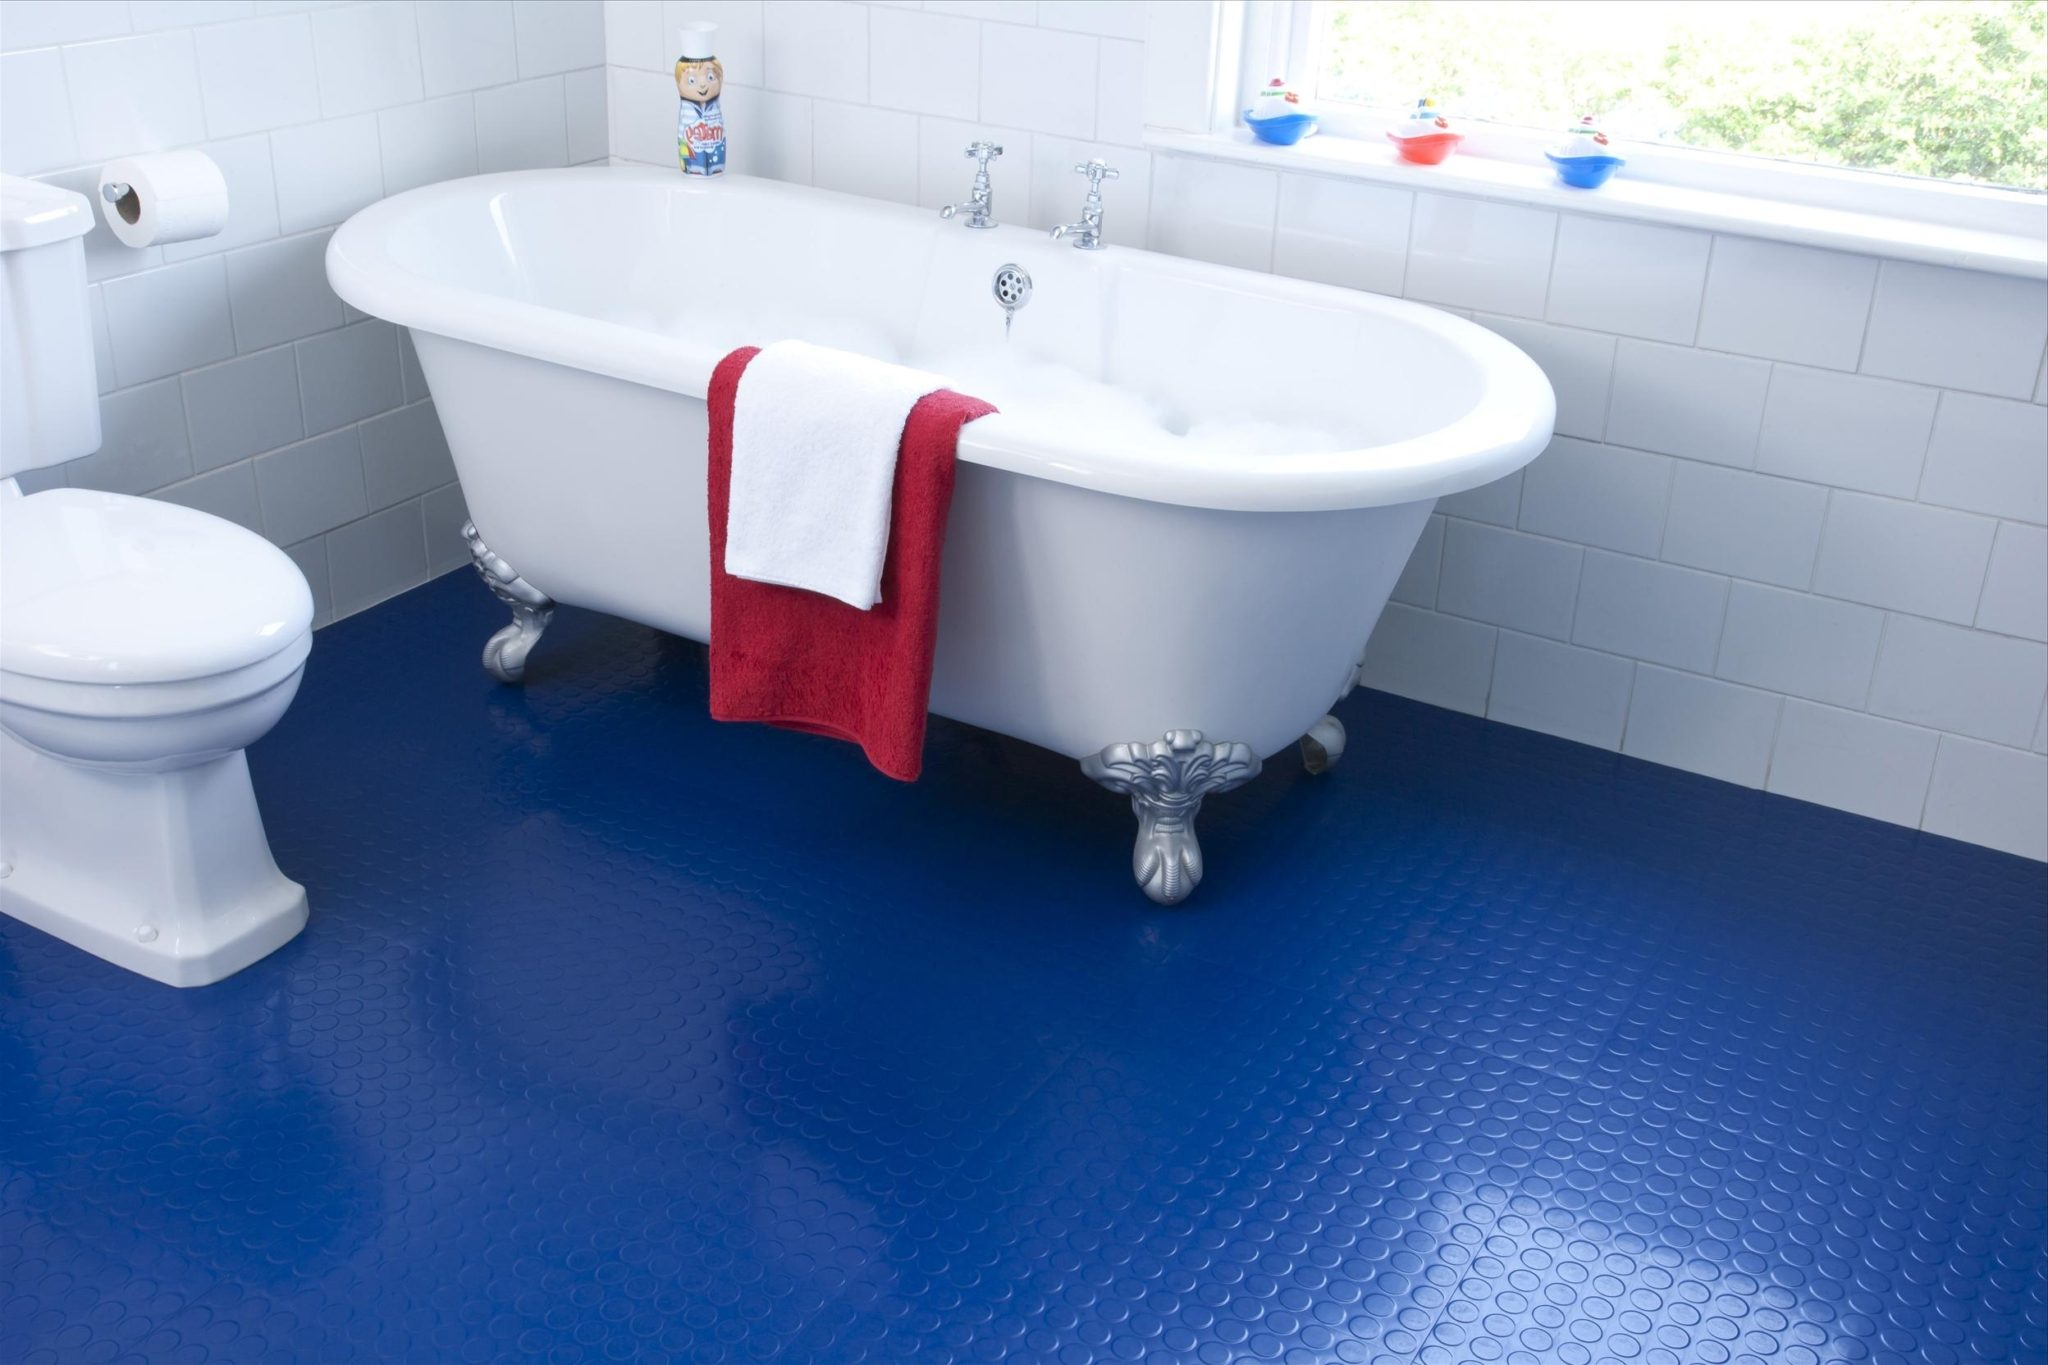 blue bathroom floor tiles. Bathroom Flooting Blue Floor Tile Tiles O